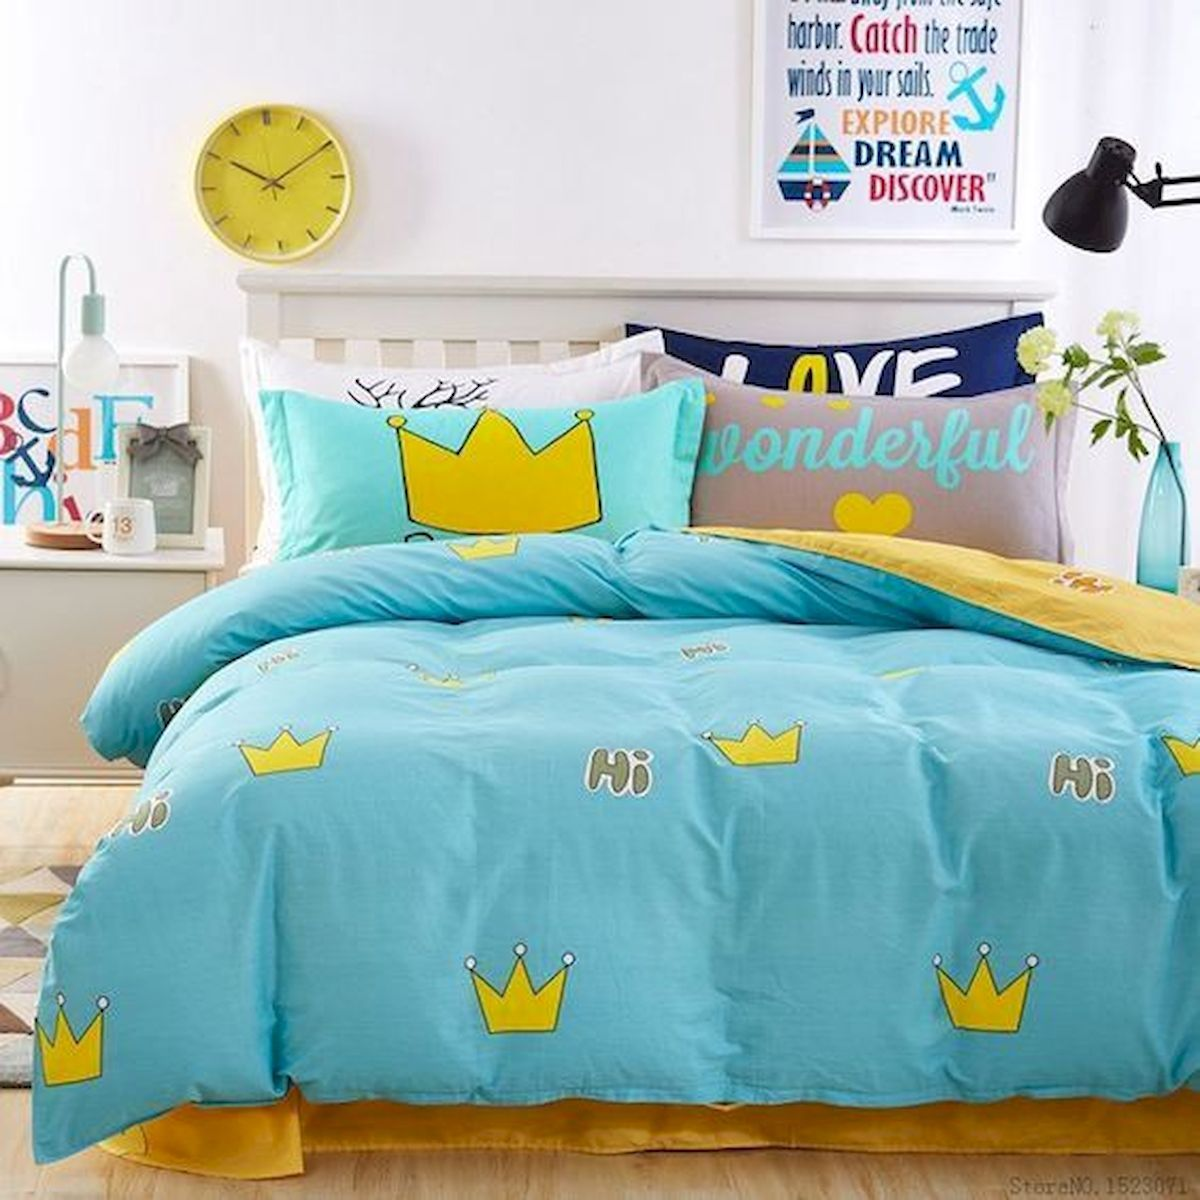 Awesome 70 Fantastic Colorful Bedroom Decor Ideas and ...